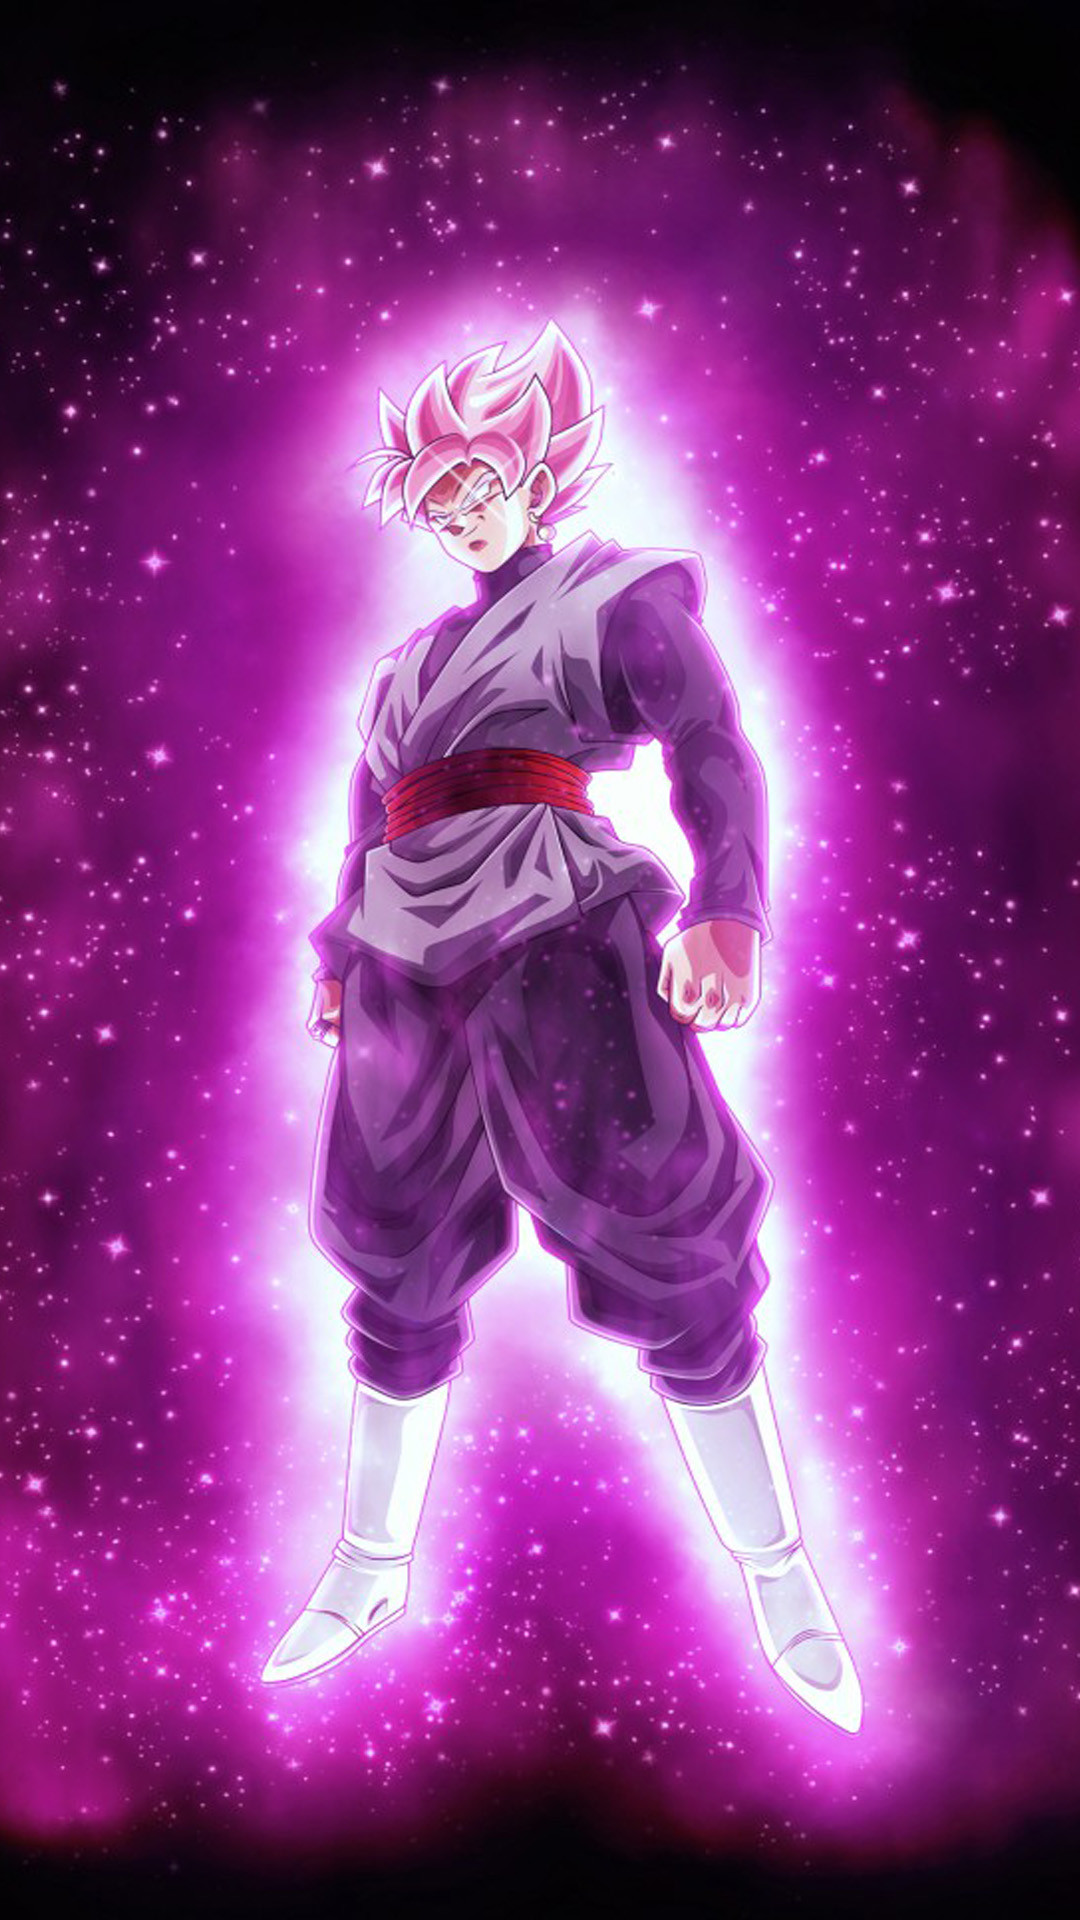 Ultimate gohan wallpapers 72 background pictures - Dragon ball super wallpaper 1080x1920 ...